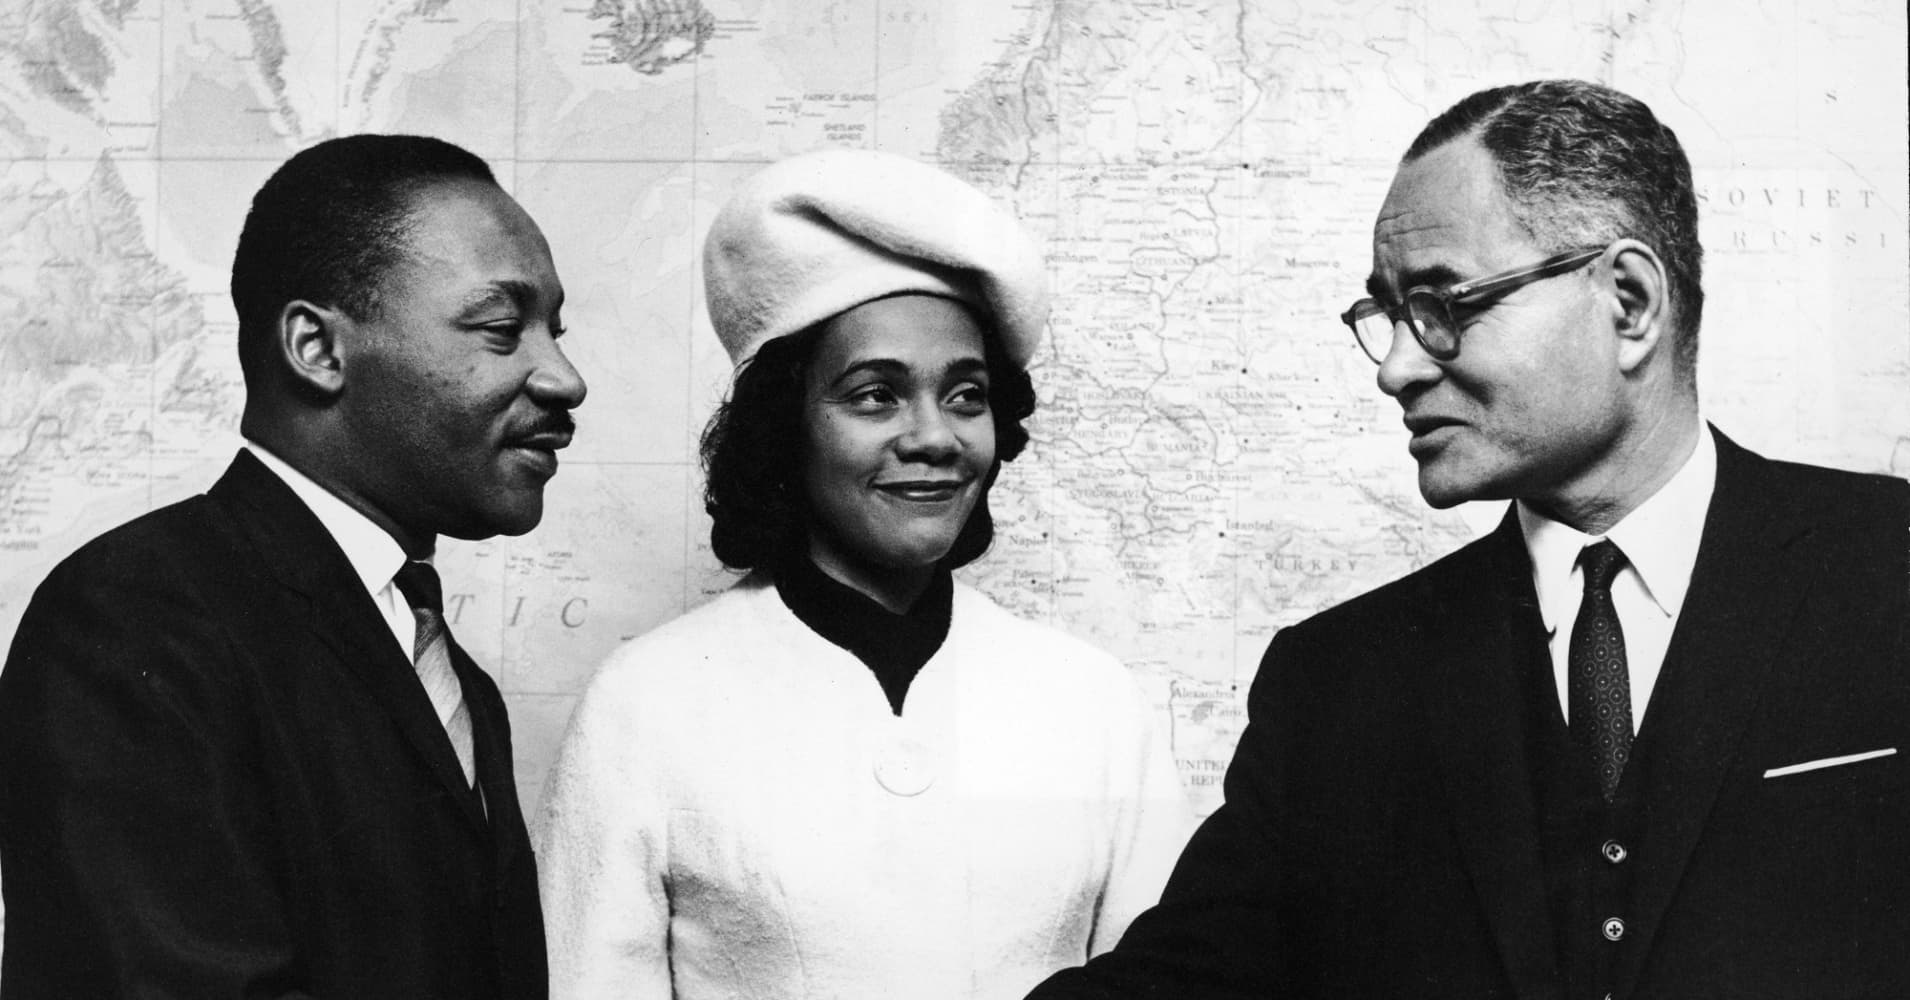 American civil rights leader Dr. Martin Luther King, Jr. and his wife Coretta are greeted by Ralph J. Bunche, United Nations Under-Secretary, at the United Nations, New York City, New York, Dec. 04, 1964.